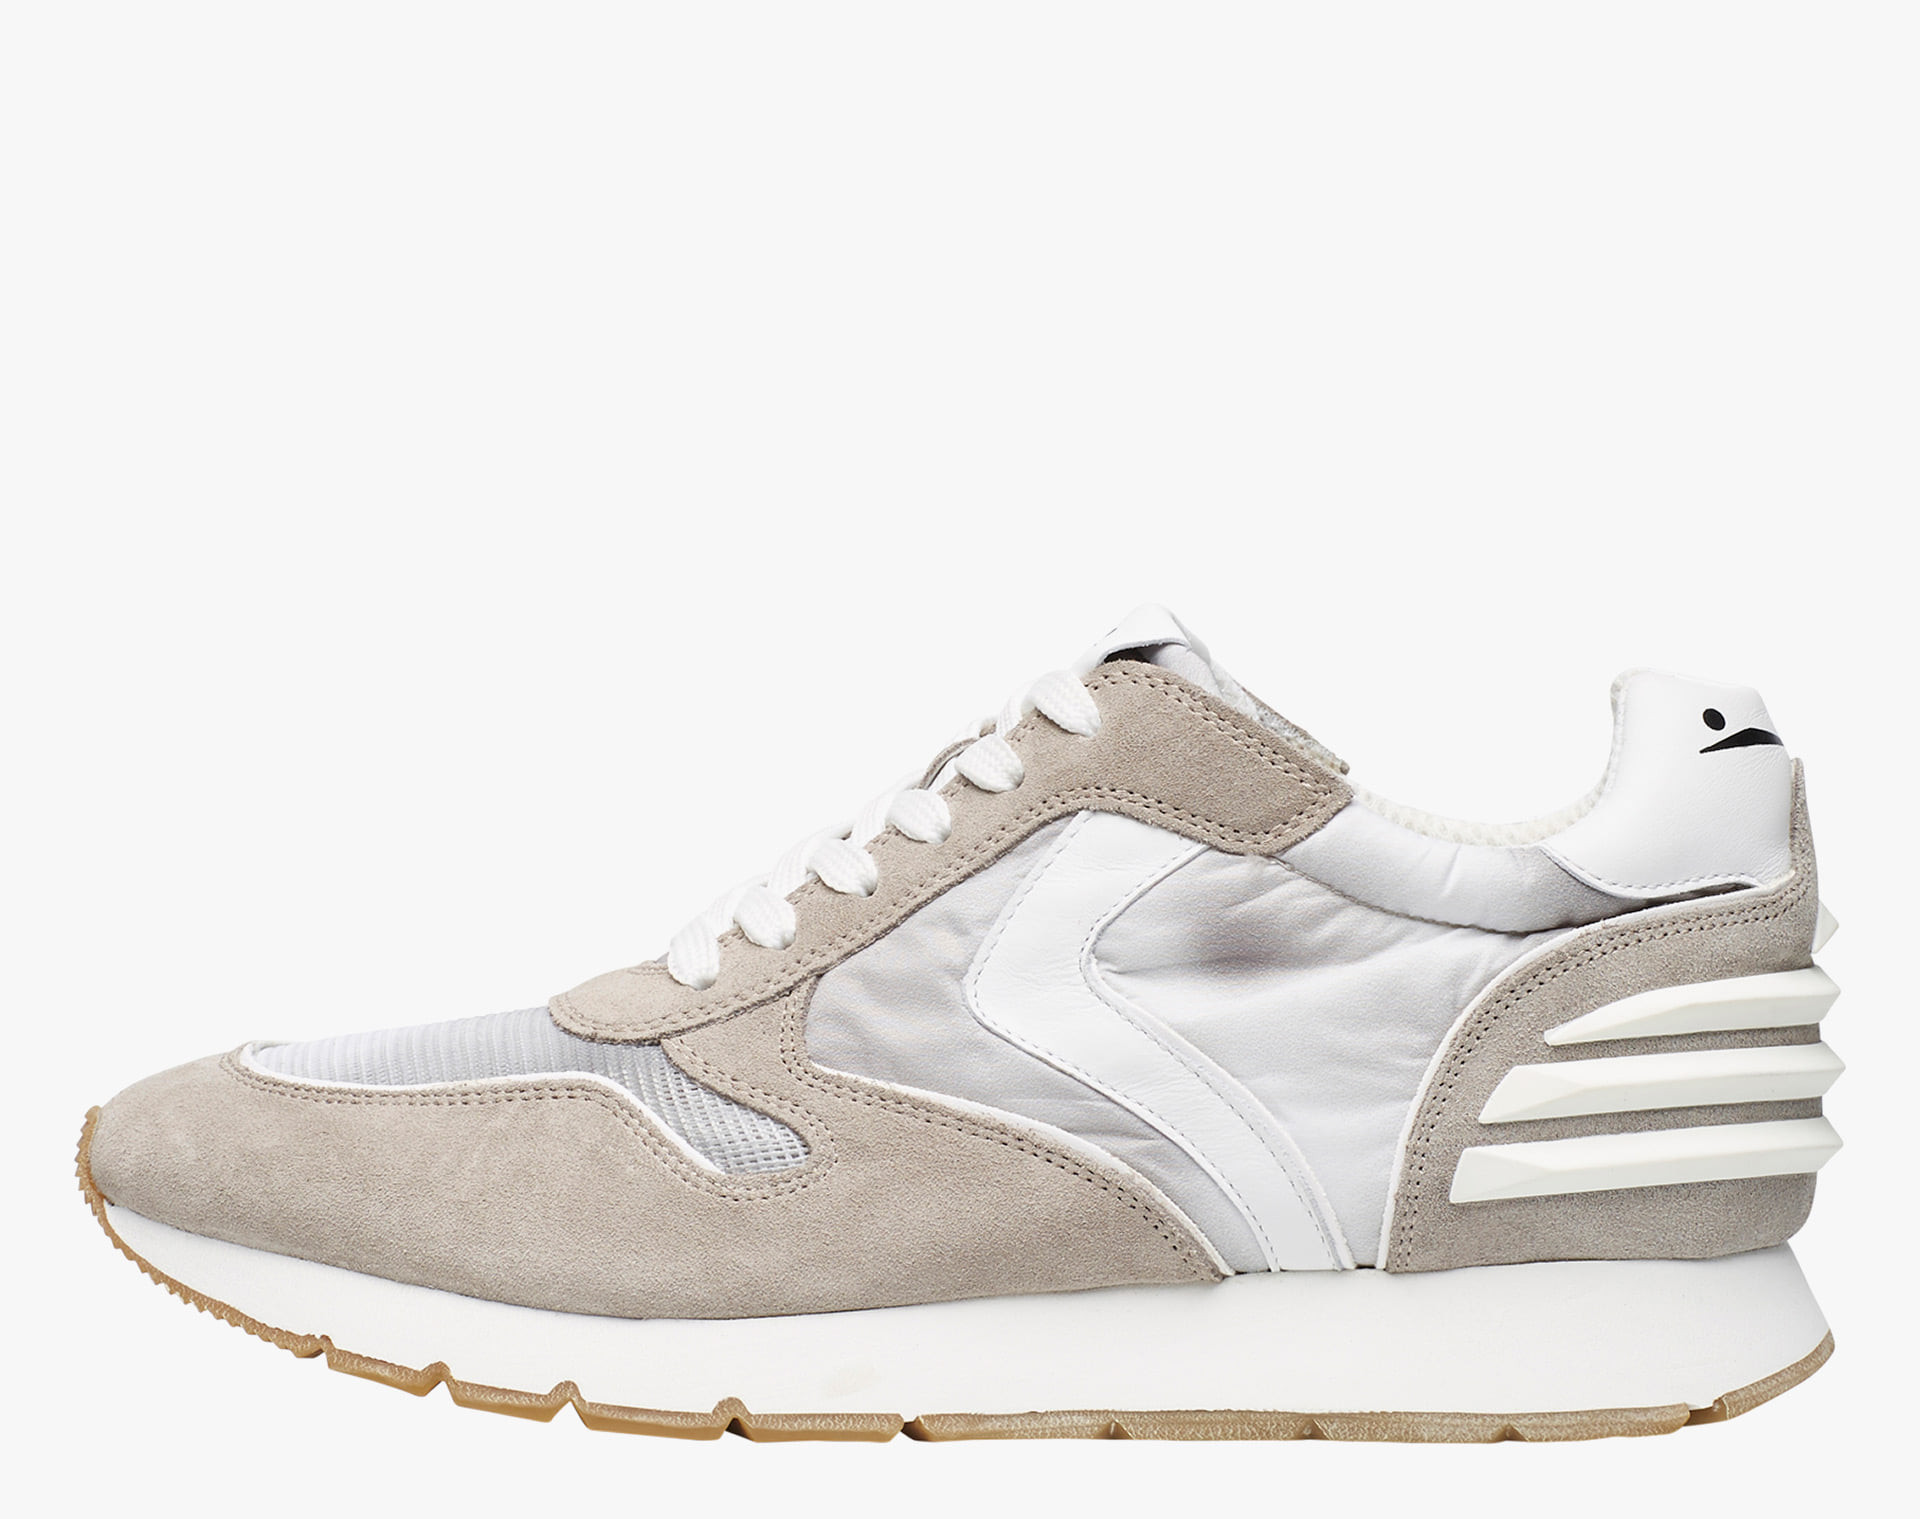 LIAM POWER - Sneaker in vintage suede, technical nylon and micro mesh - Gray